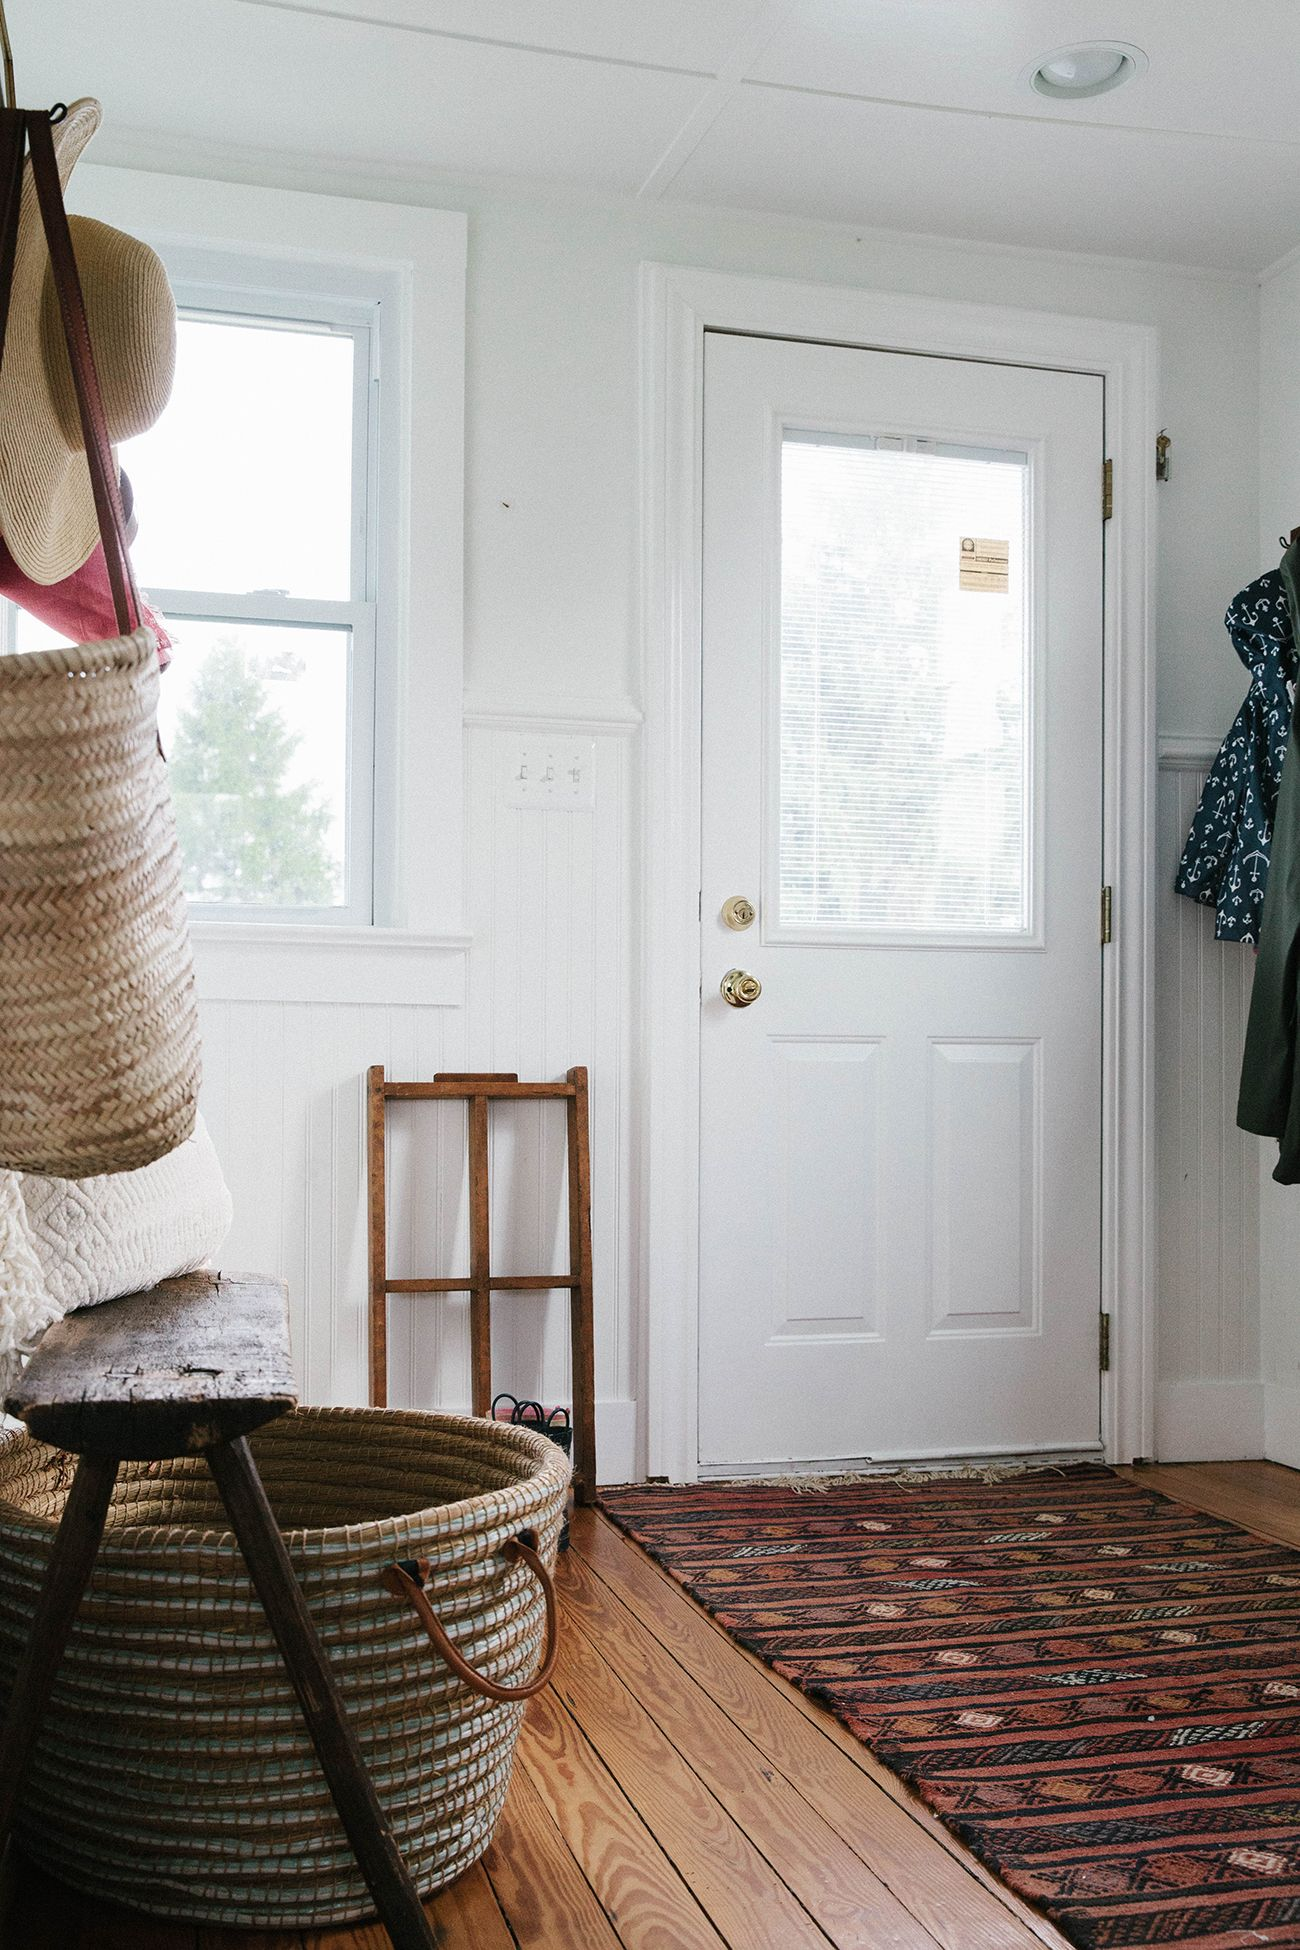 Laundry & Mud Room - Organize Spaces - A Daily Something #summertips images